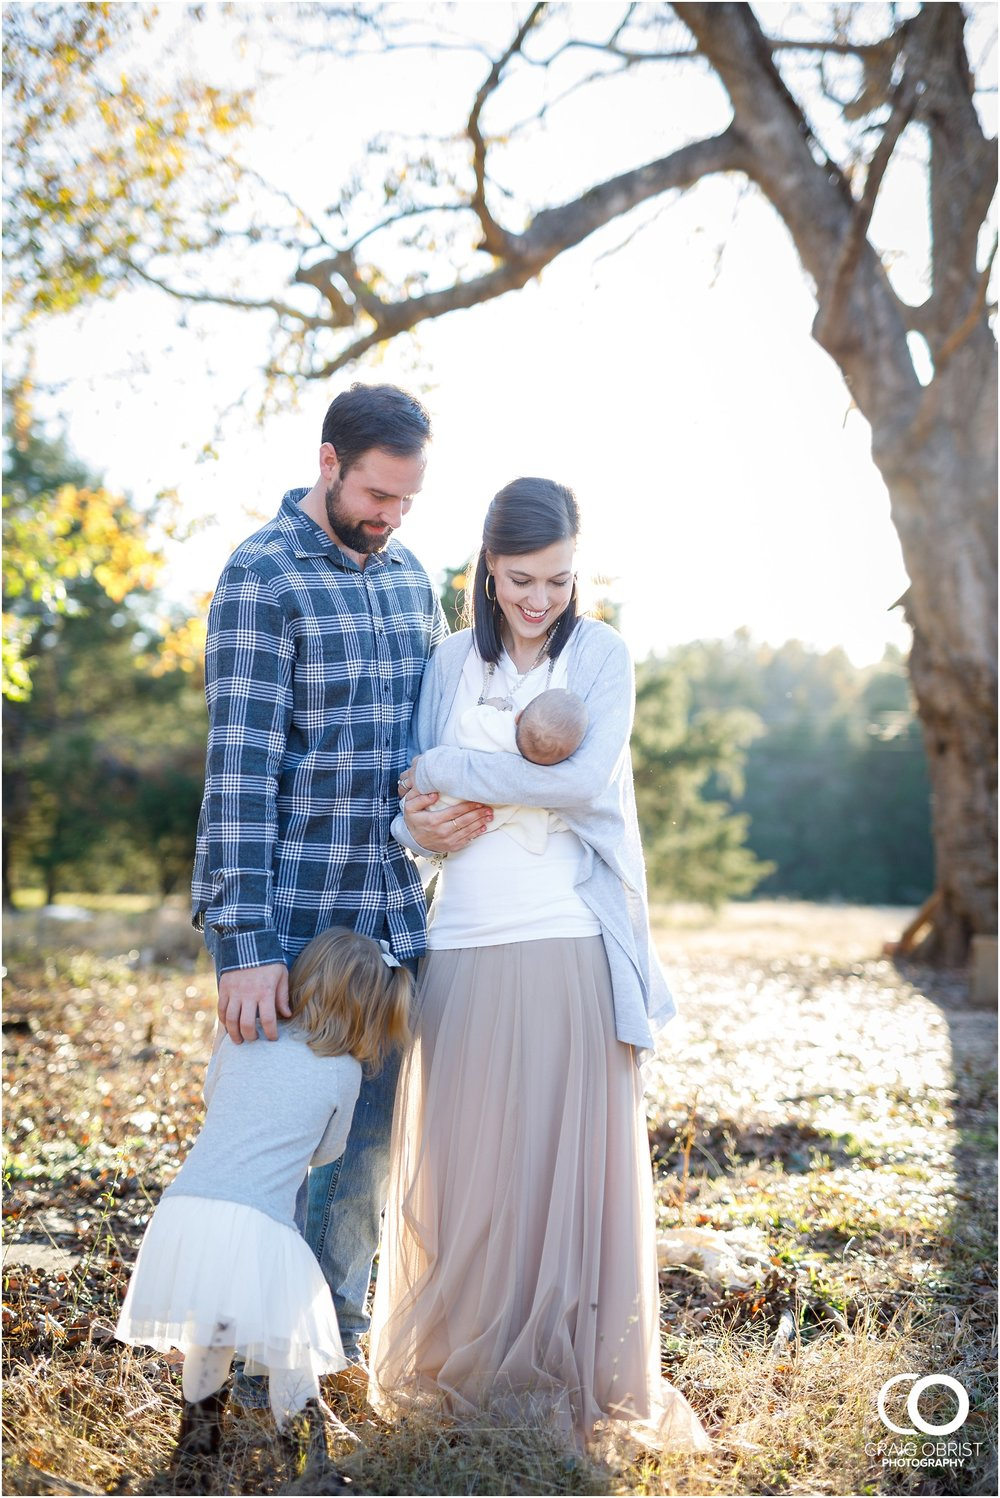 Augusta Countryside family portraits rustic_0004.jpg